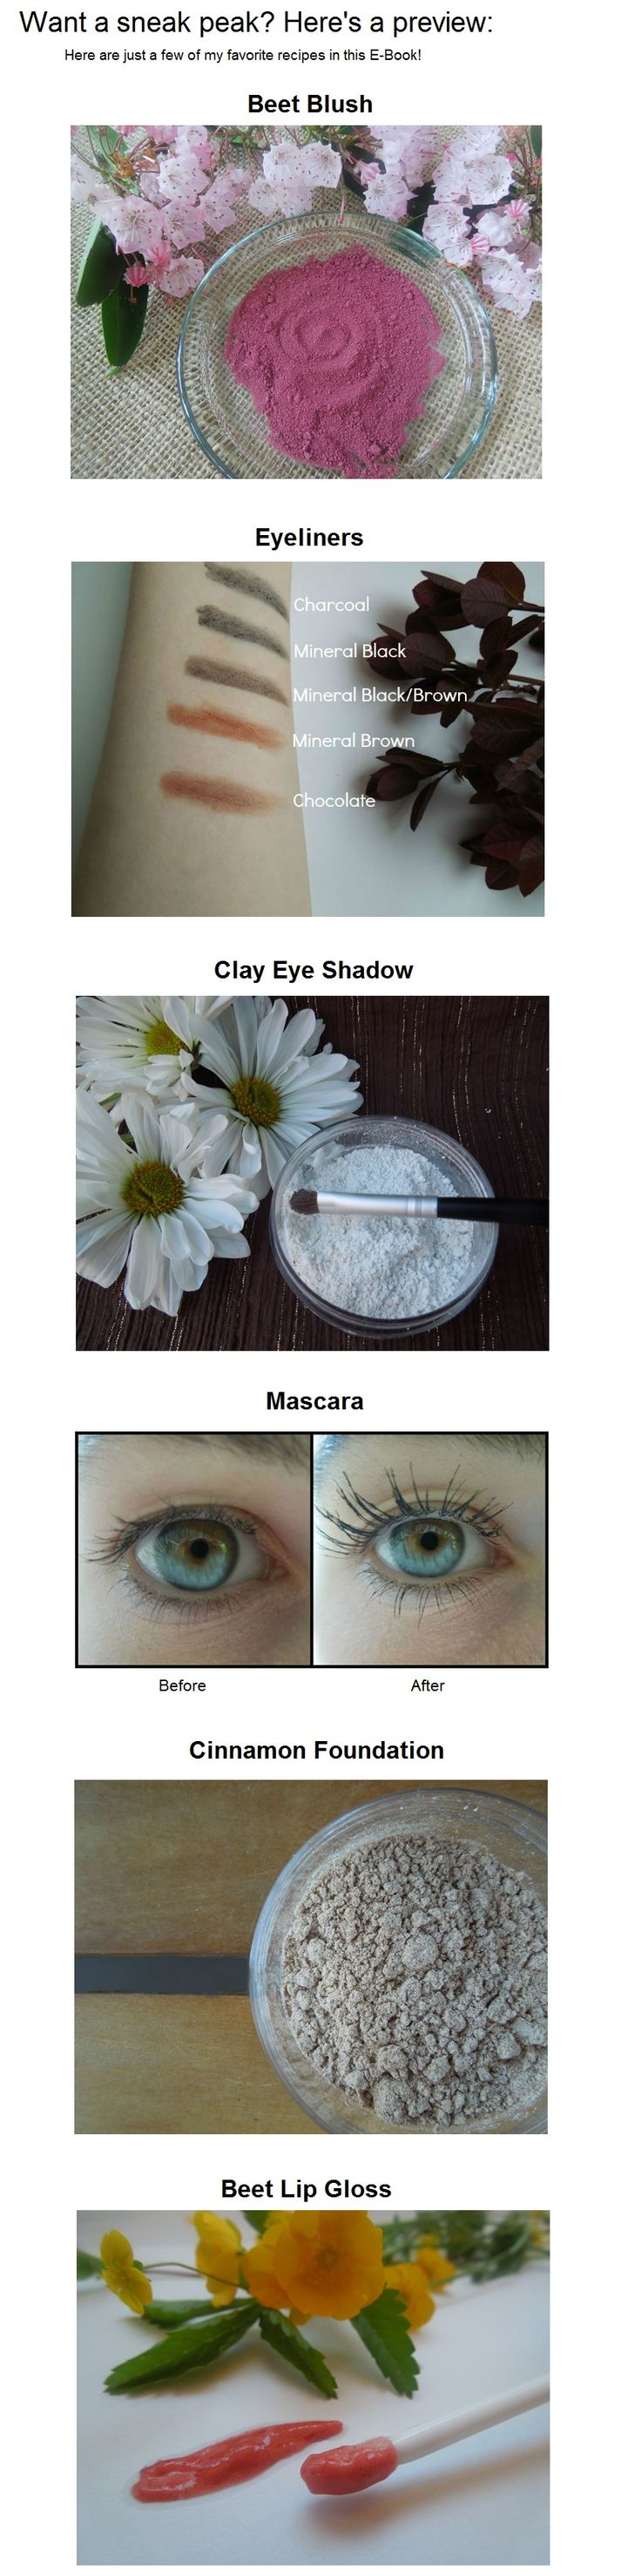 Organic, Homemade Makeup! (Because you shouldn't put it ON your body if you wouldn't put it IN your body)